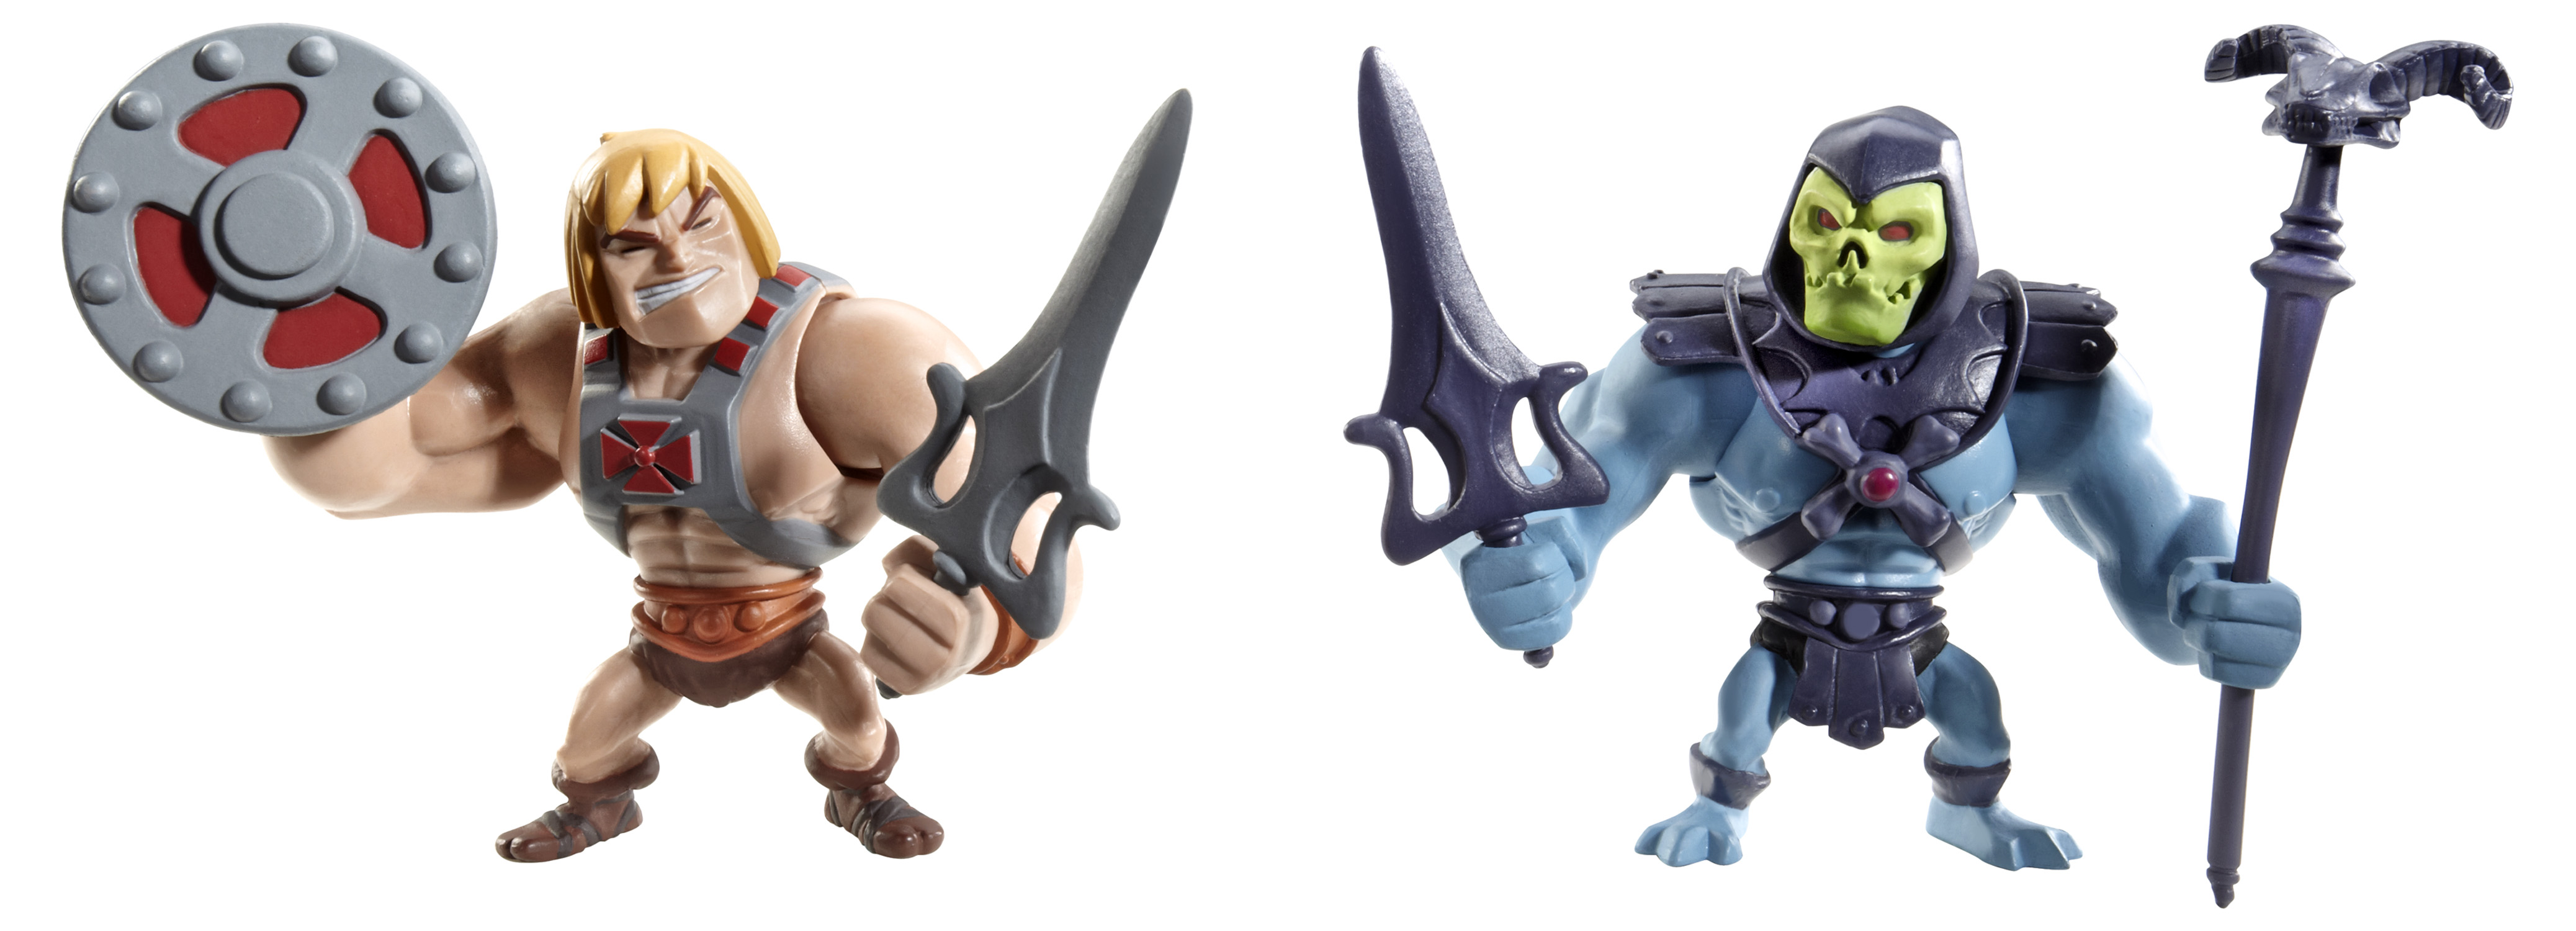 Mattel's Masters of the Universe Classics Mini He-Man & Skeletor Figures.